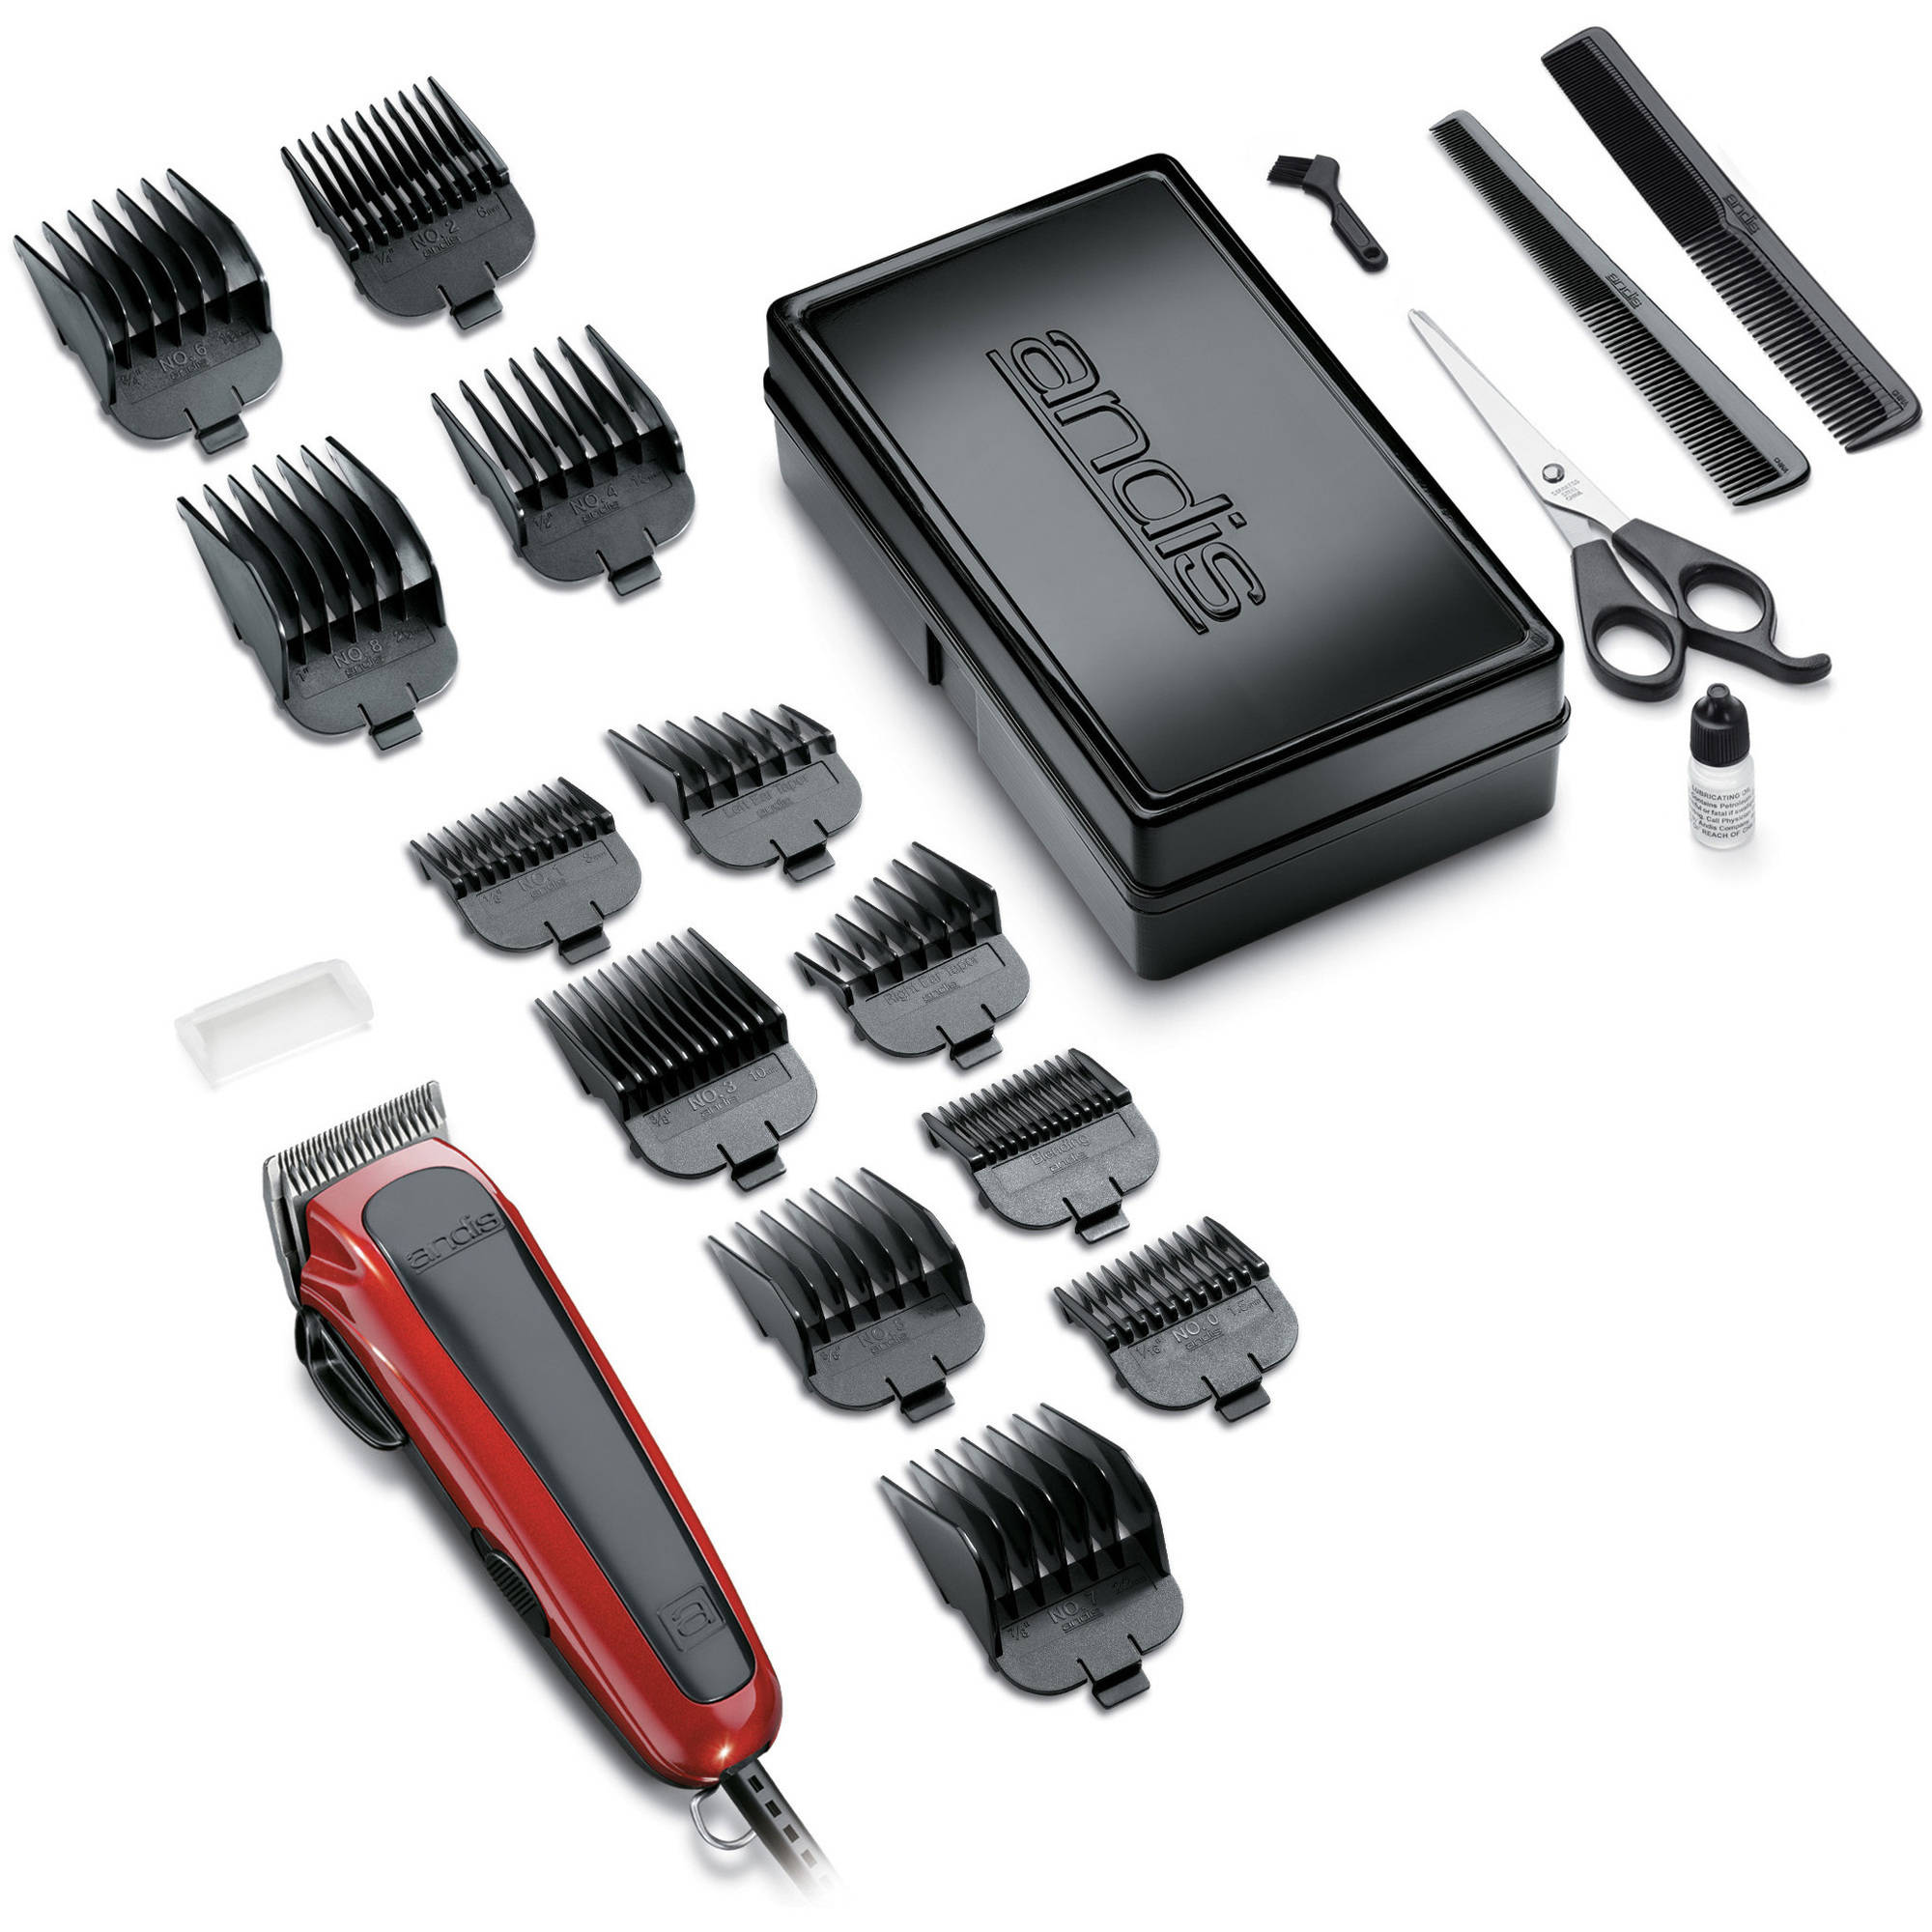 Andis Easy Cut 20-Piece Home Haircutting Kit, 75360, Red